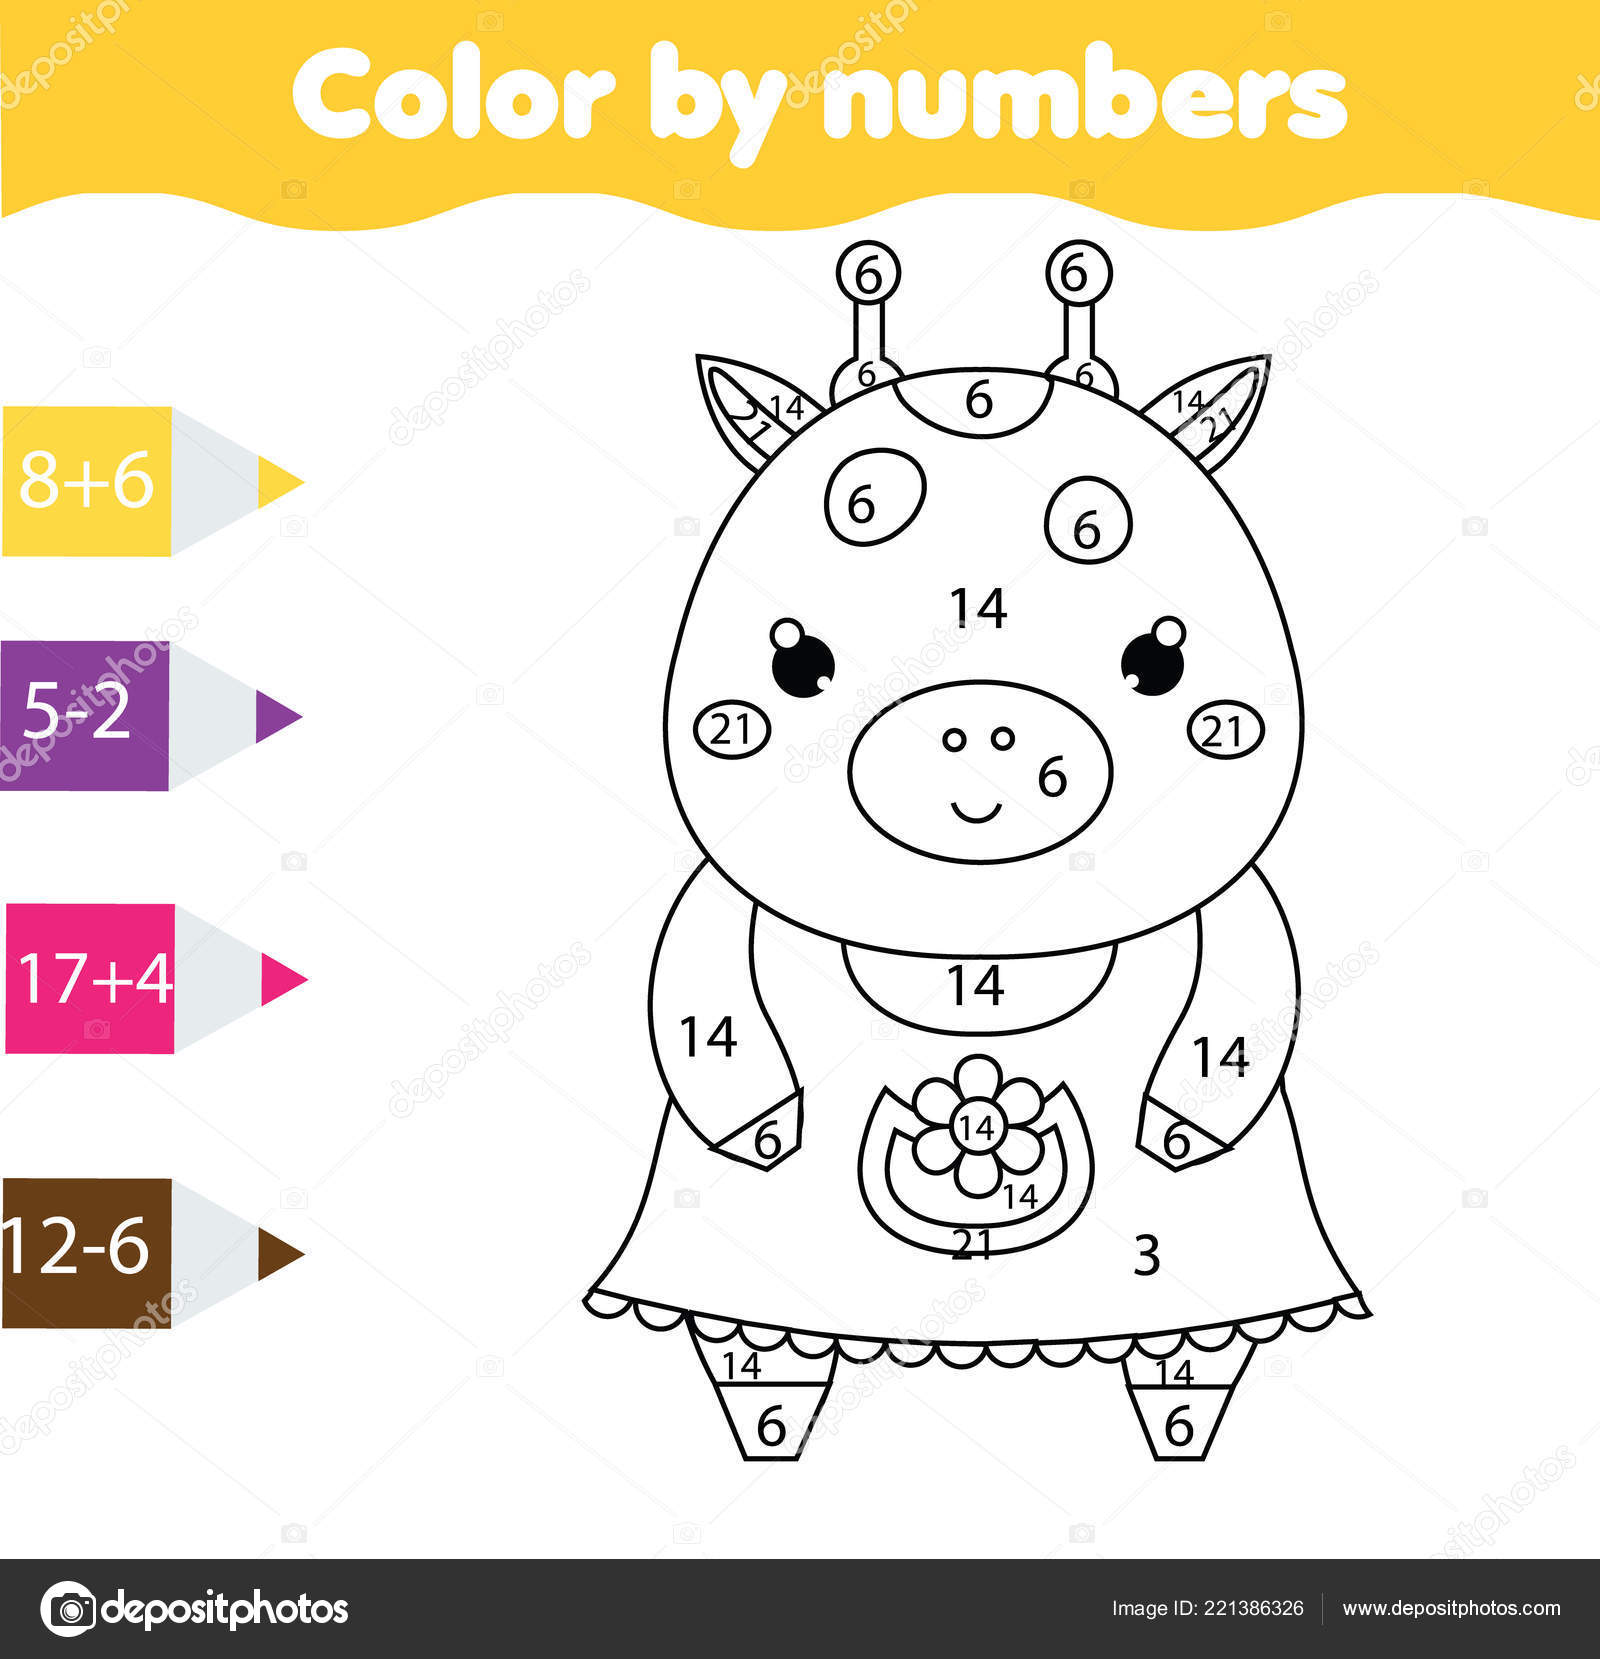 Children Educational Game Coloring Page Cute Giraffe Color Numbers